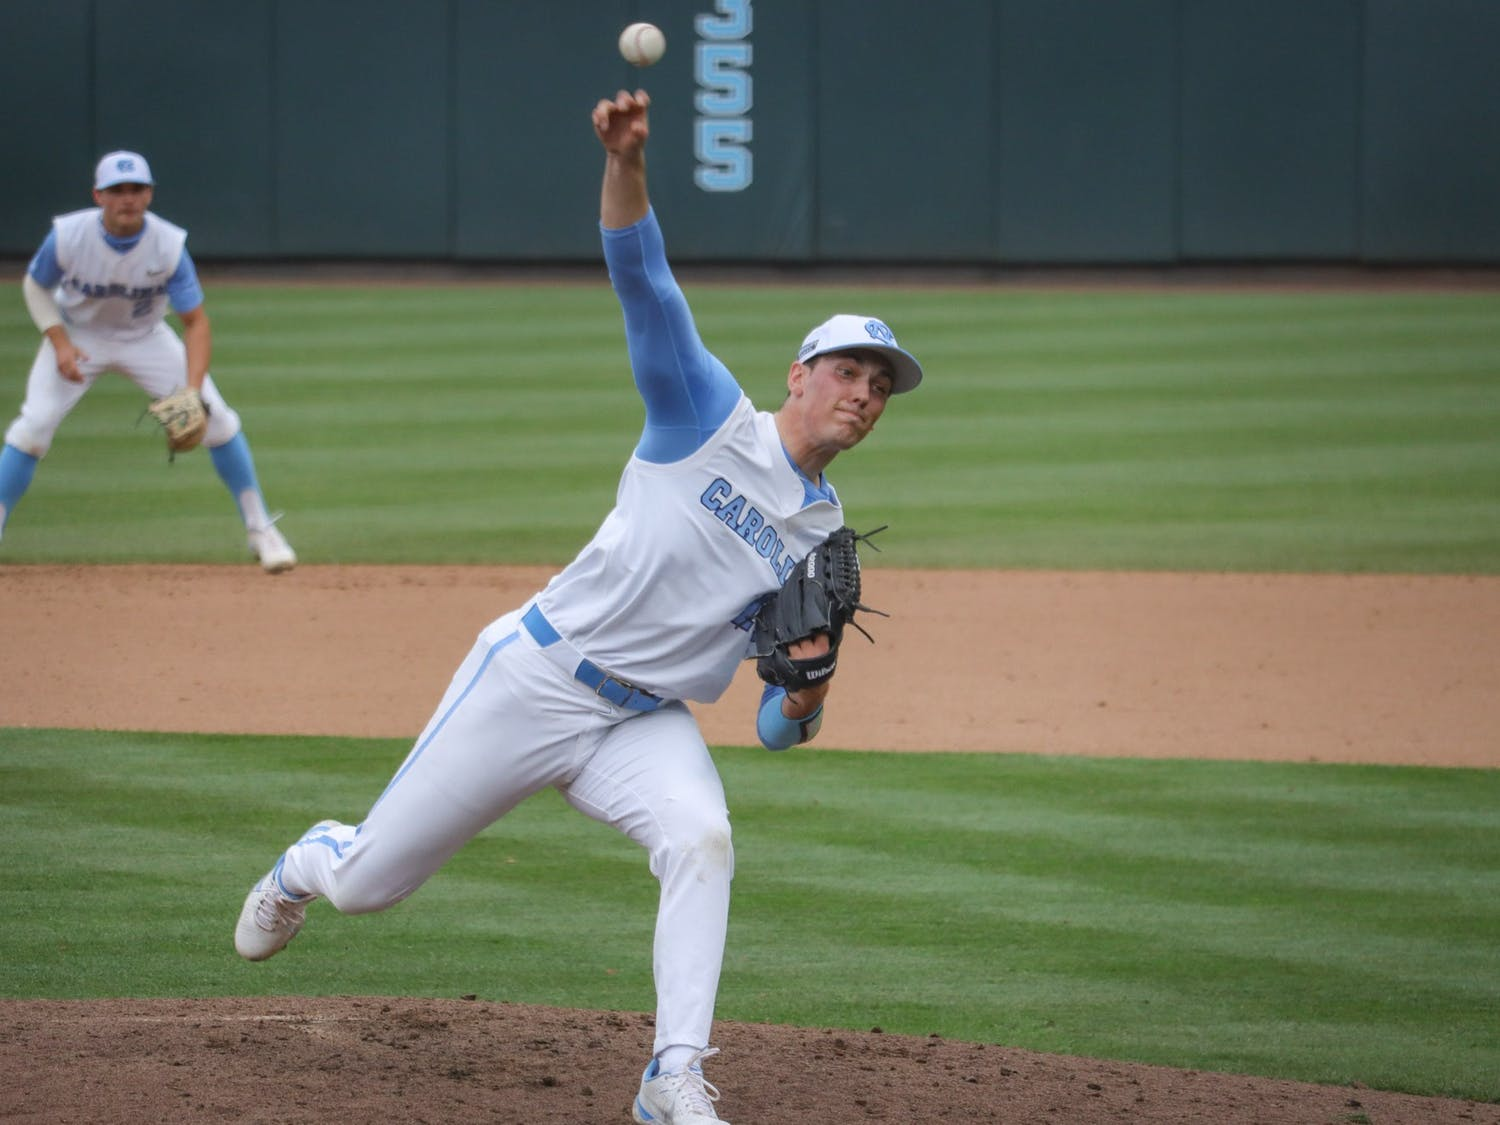 UNC senior pitcher Shawn Gage Gillian (15) pitches the ball during the Tar Heels' 1-6 loss against N.C. State on Saturday, March 27, 2021 in Boshamer Stadium in Chapel Hill, N.C.